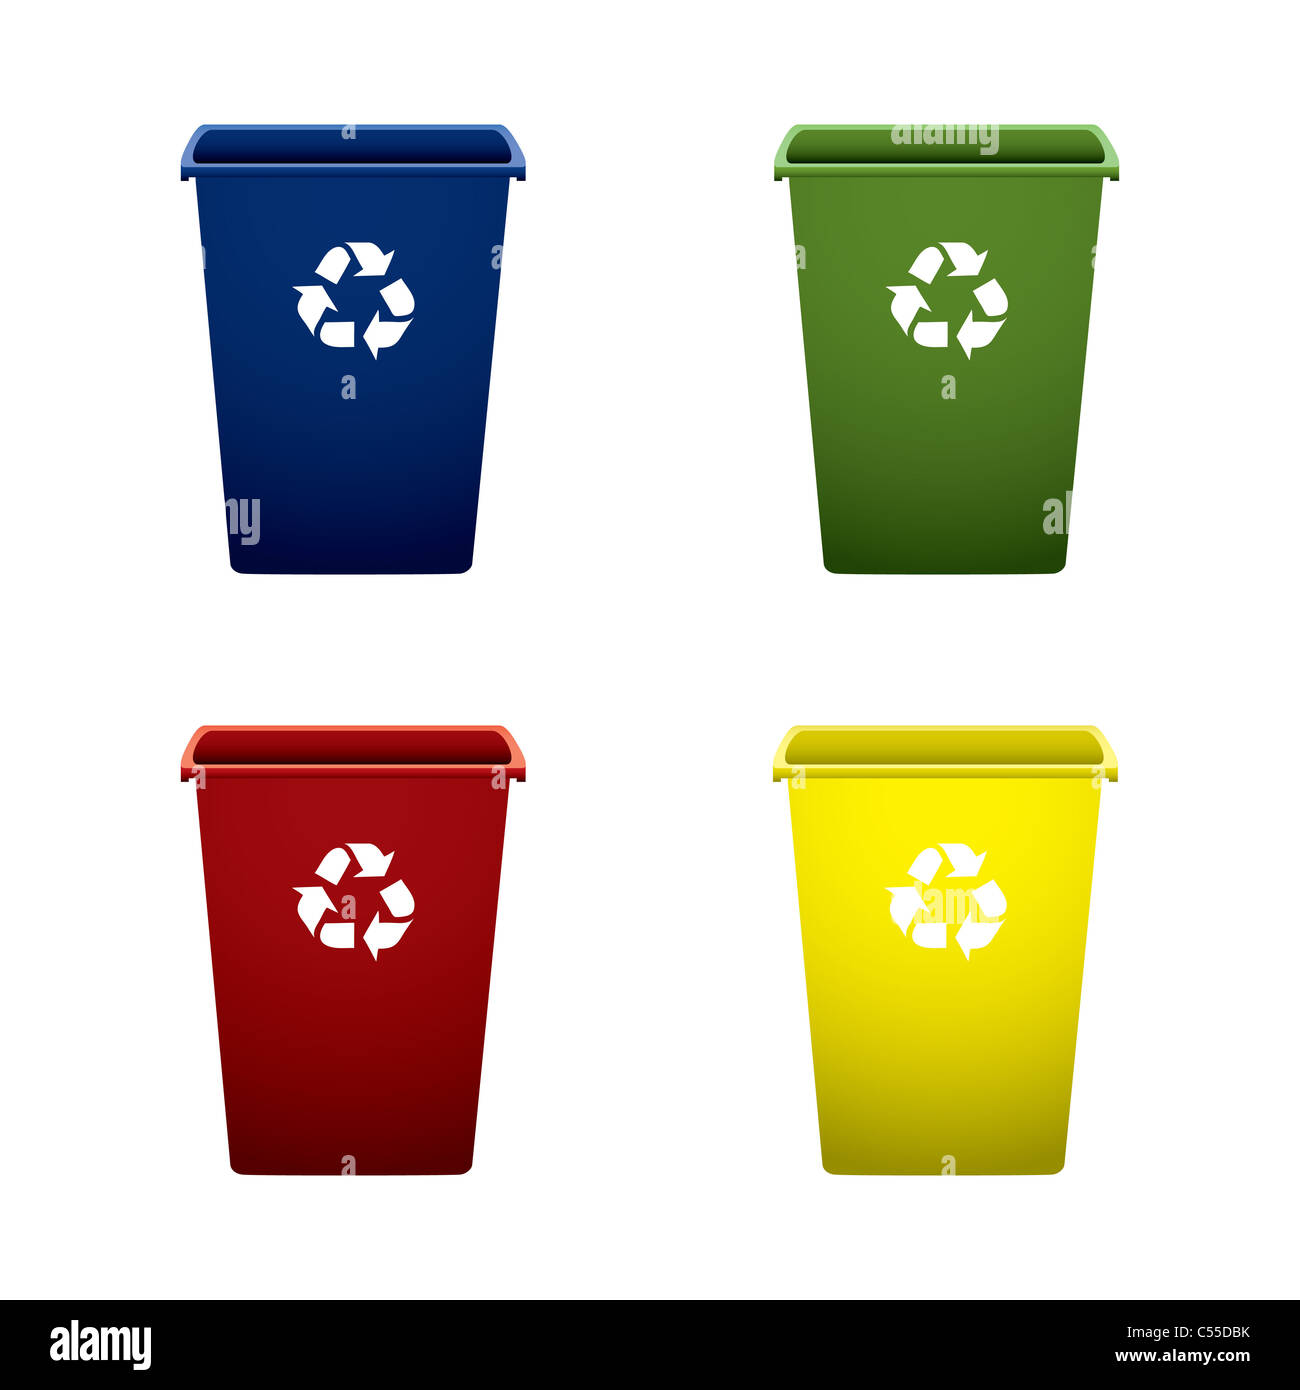 Collection of colourful recycle trash or rubbish bins - Stock Image